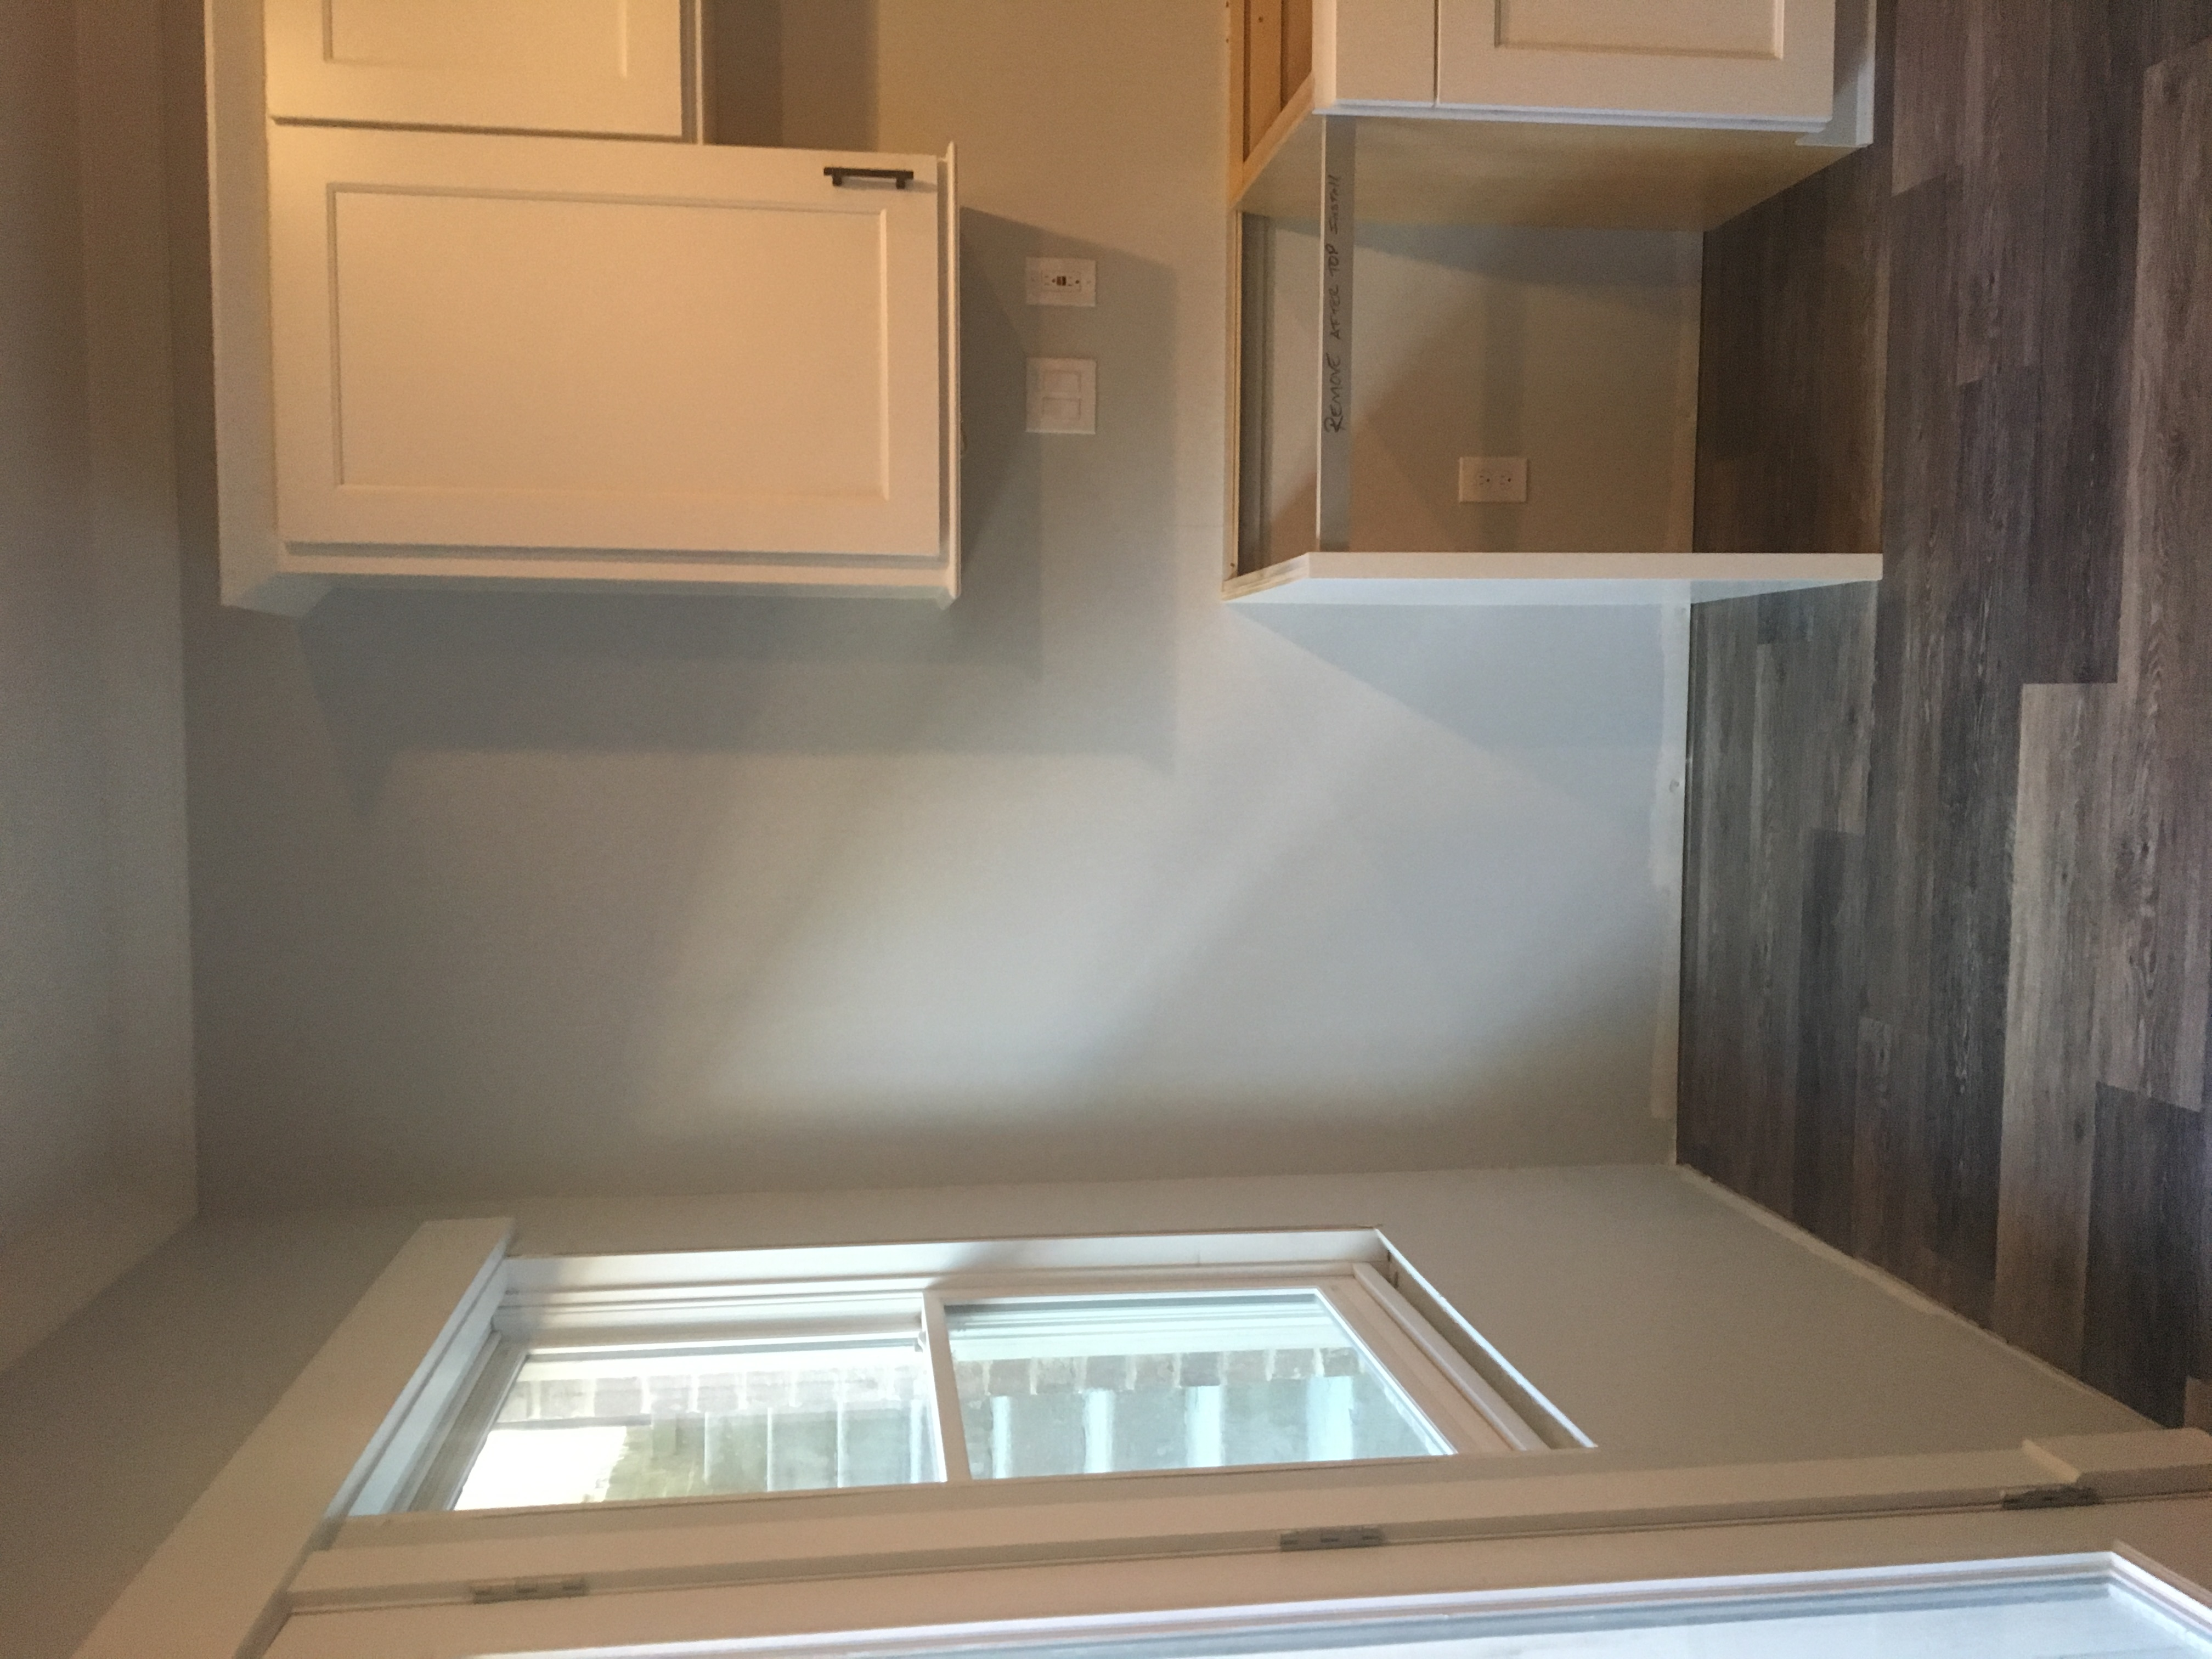 Cabinetry install